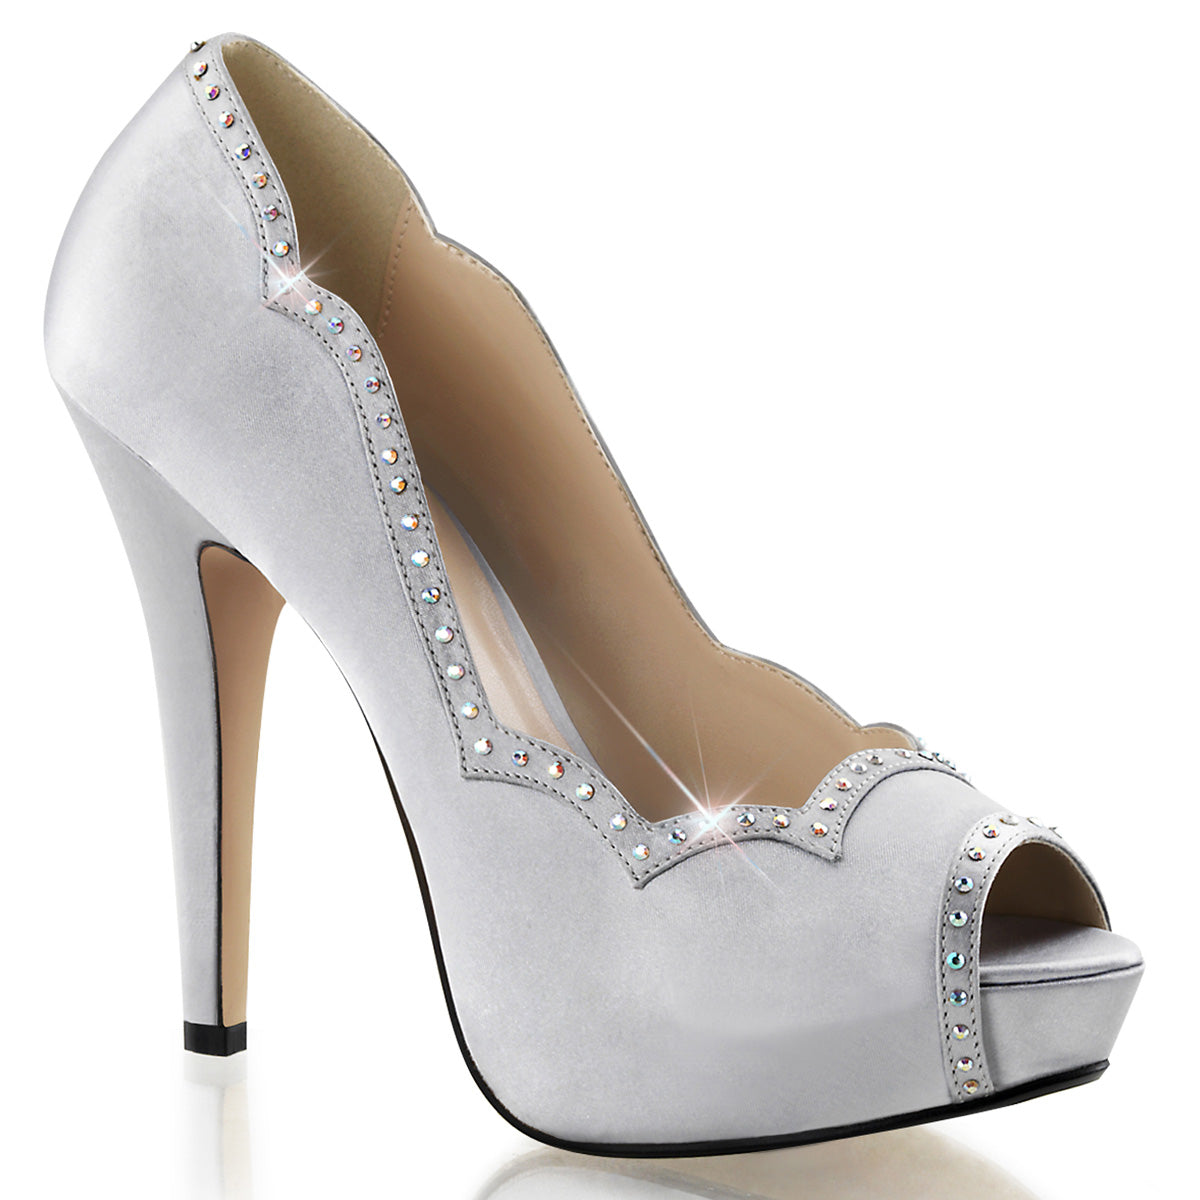 Fabulicious - LOLITA-05 - Silver Satin - Shoes